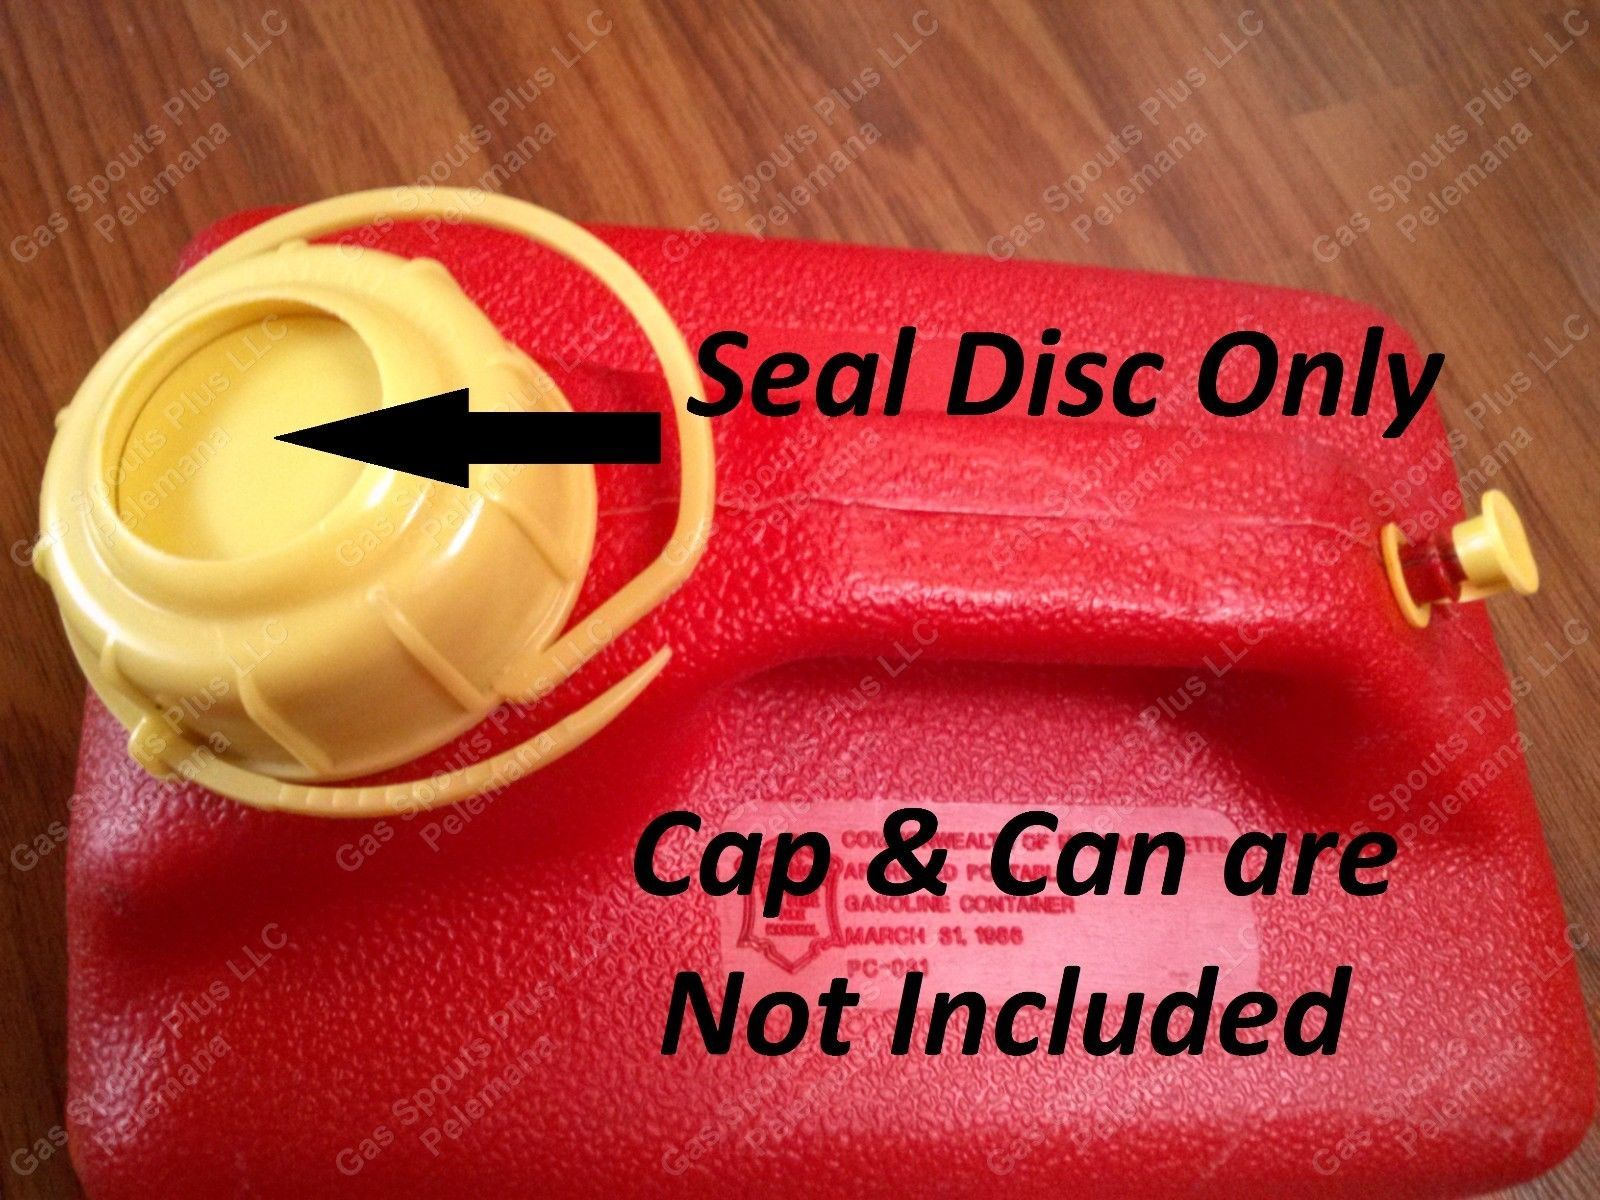 "/""5 NEW CHILTON SEAL DISCS/"" Sears Craftsman Gas Cans P10 P15 P20 P25 P50 P60 P500"